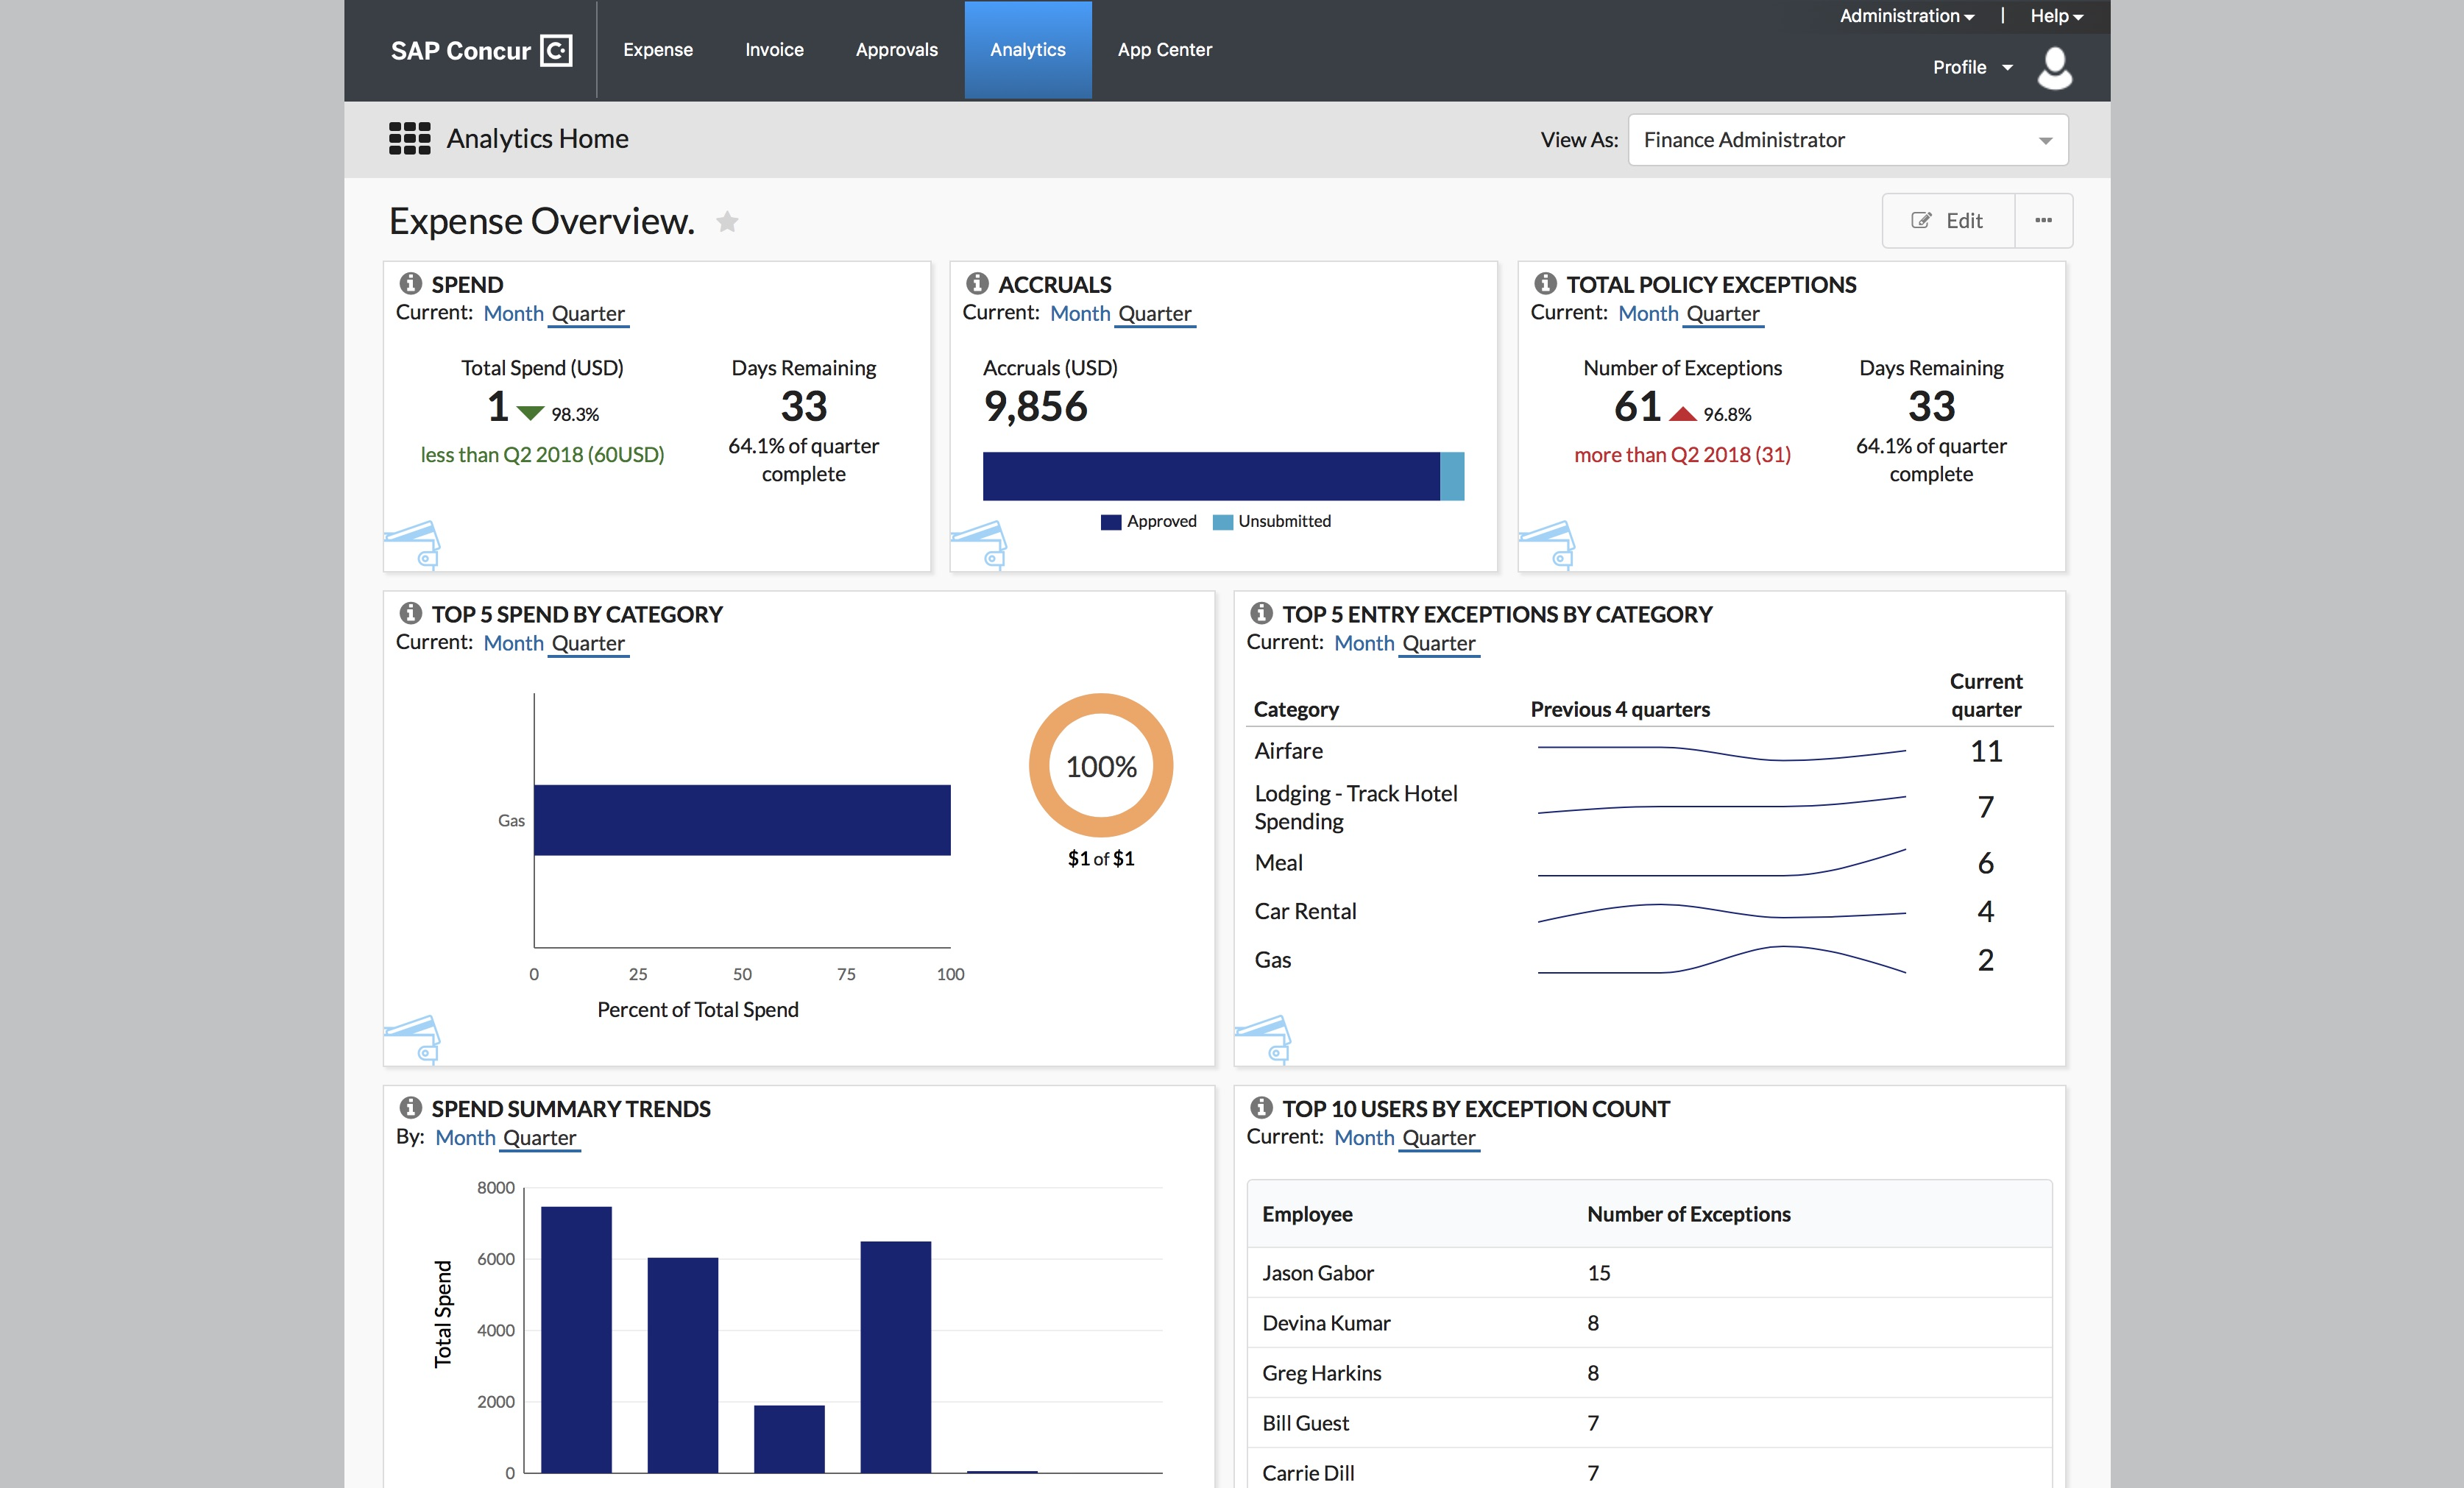 Get the reports you need - Use Analytics from SAP Concur